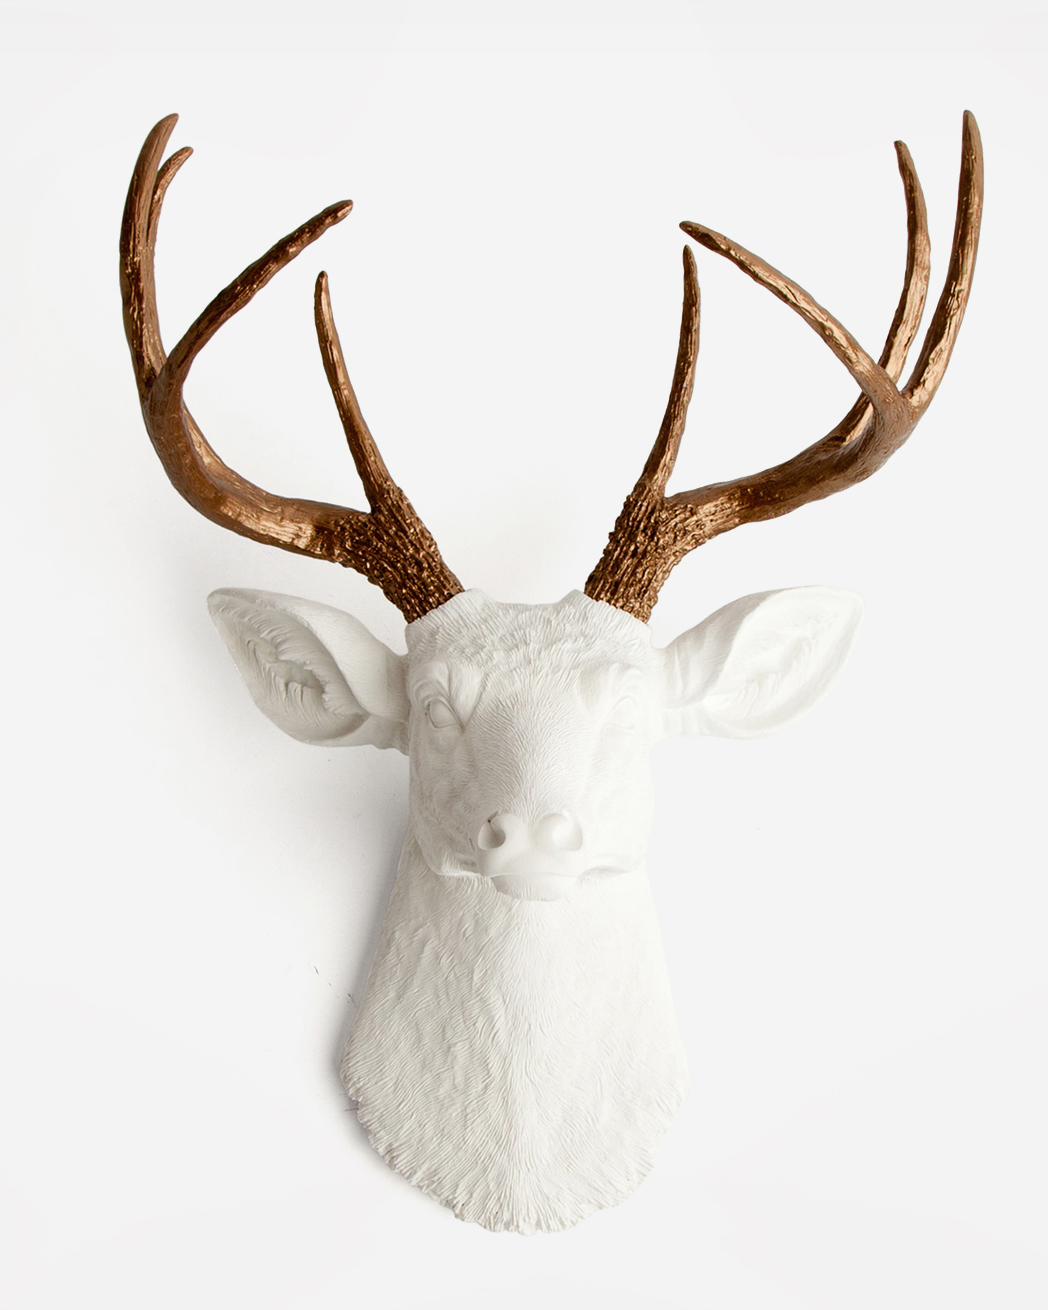 registry-tips-resin-deer-head-1114.jpg